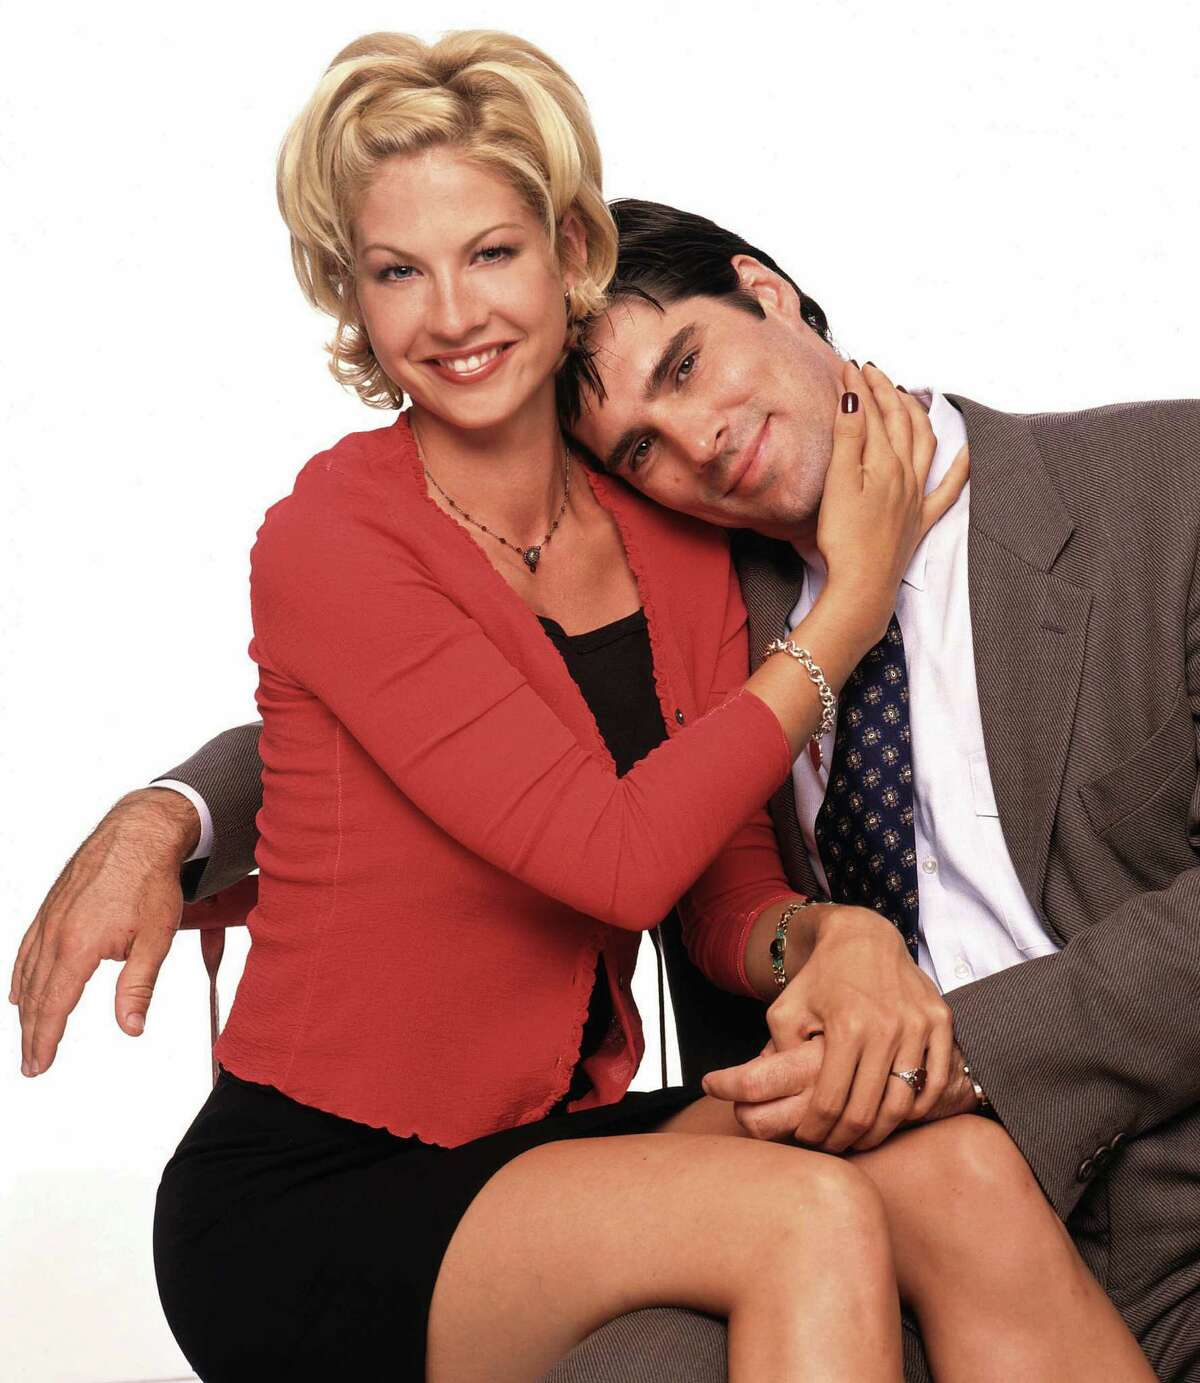 DHARMA & GREG-- Jenna Elfman and Thomas Gibson star in a new, life-affirming, romantic comedy, DHARMA & GREG, which will premiere WEDNESDAY, SEPT. 24 (8:30-9 pm, ET) on the ABC Television Network.